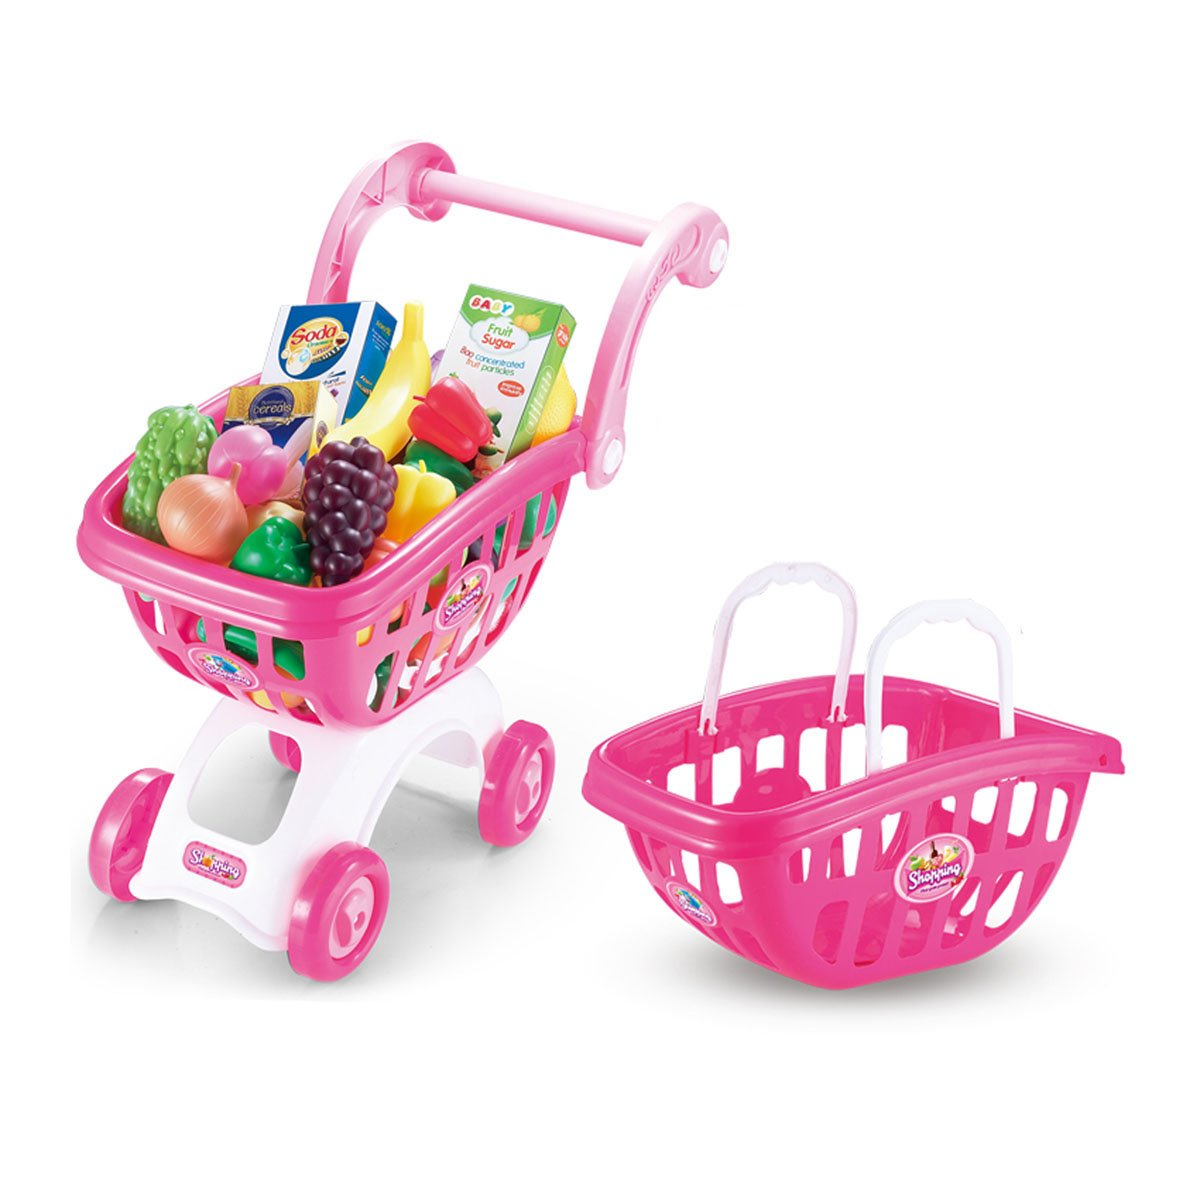 Night Lions Tech(TM) Shopping Cart with Full Grocery Food Toy Playset for Kids